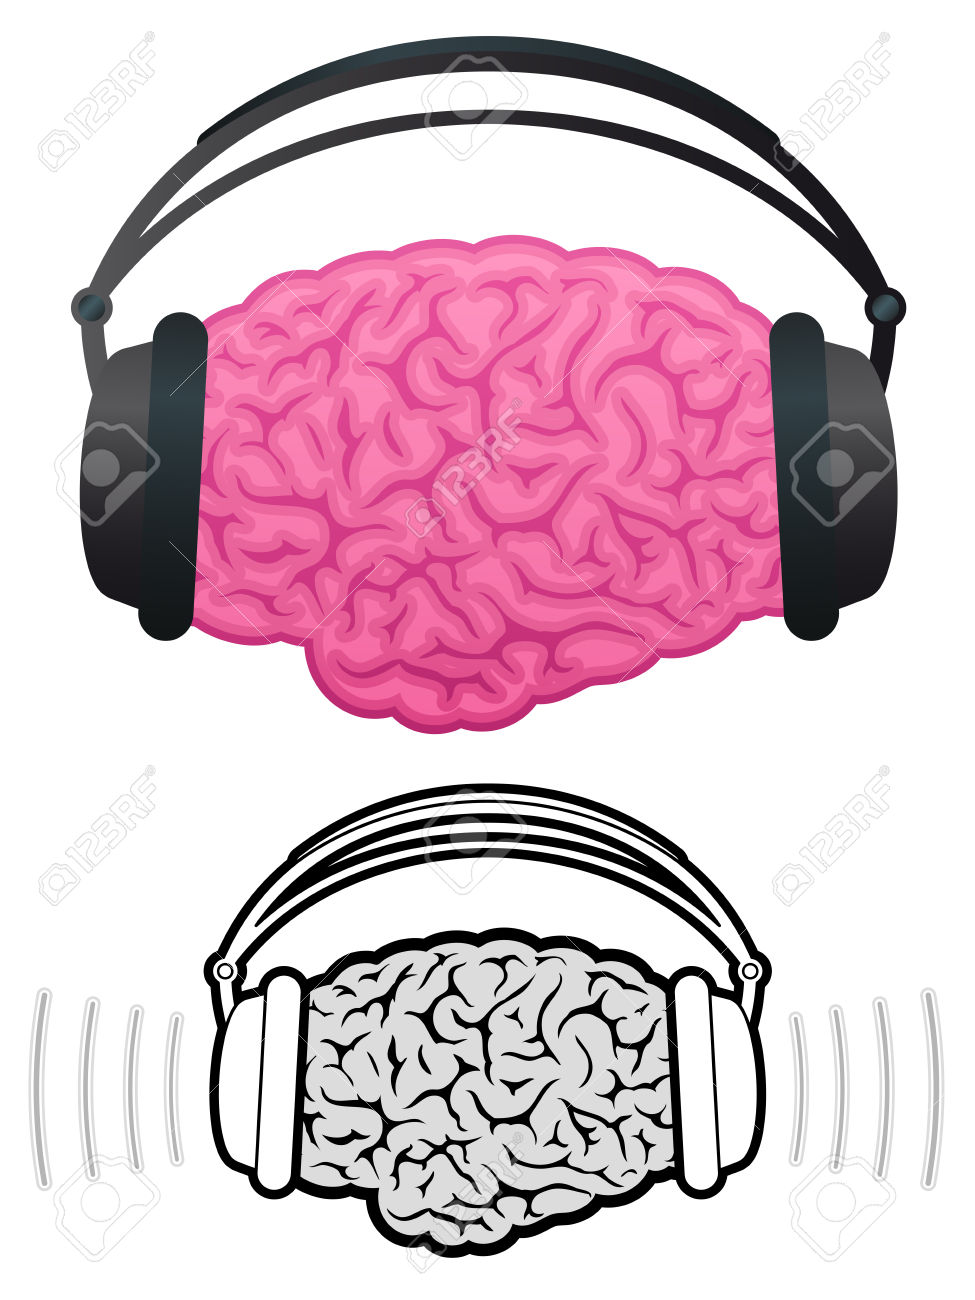 Brain With Headphones Listening To Music Royalty Free Cliparts.